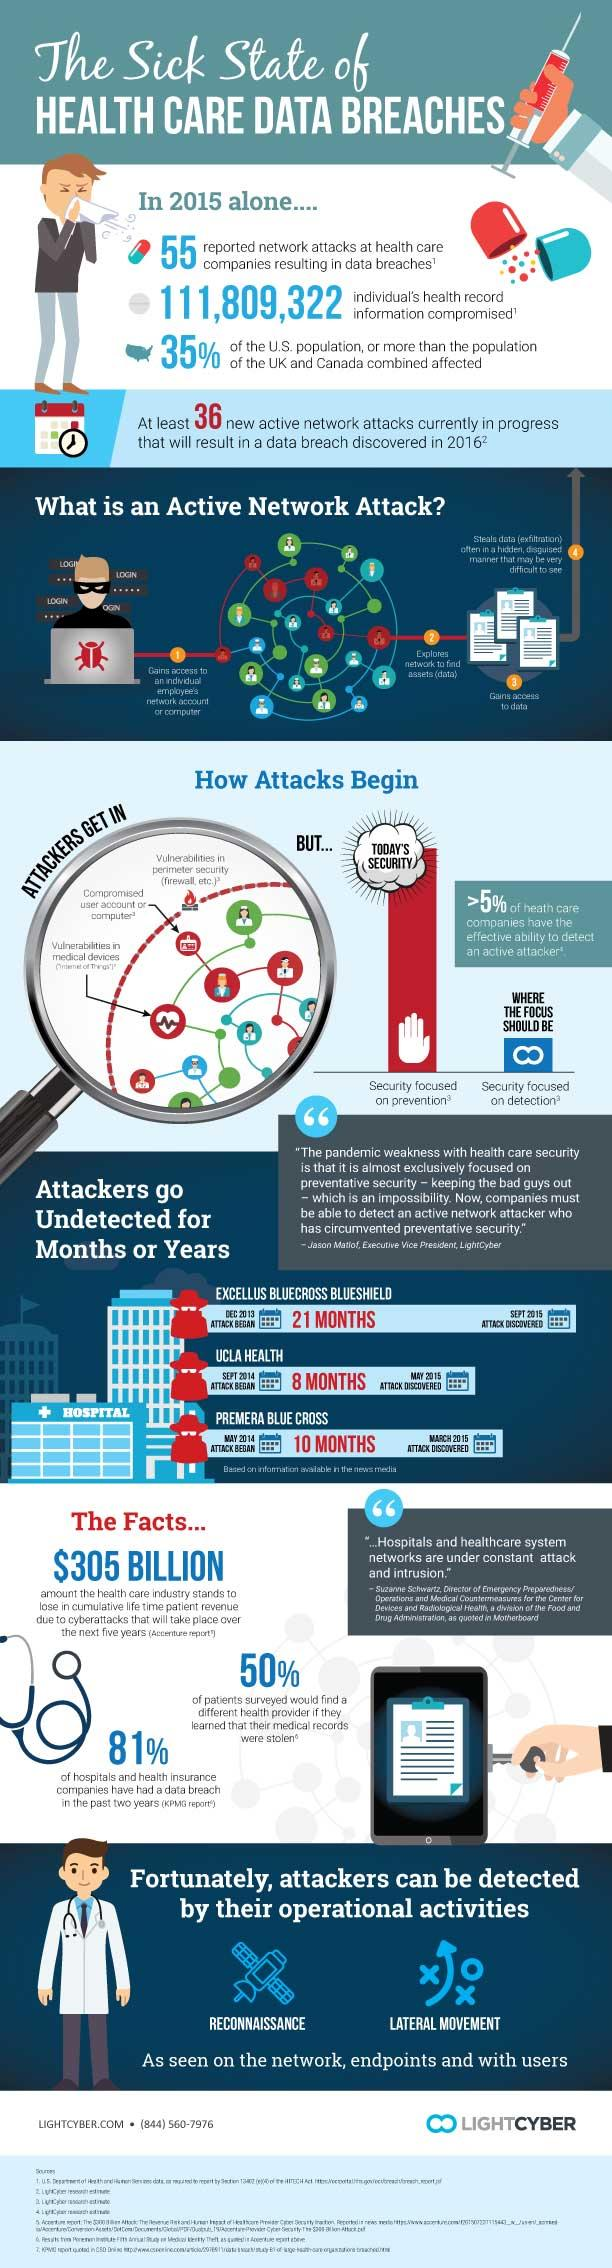 The Sick State of Healthcare Data Breaches Infographic